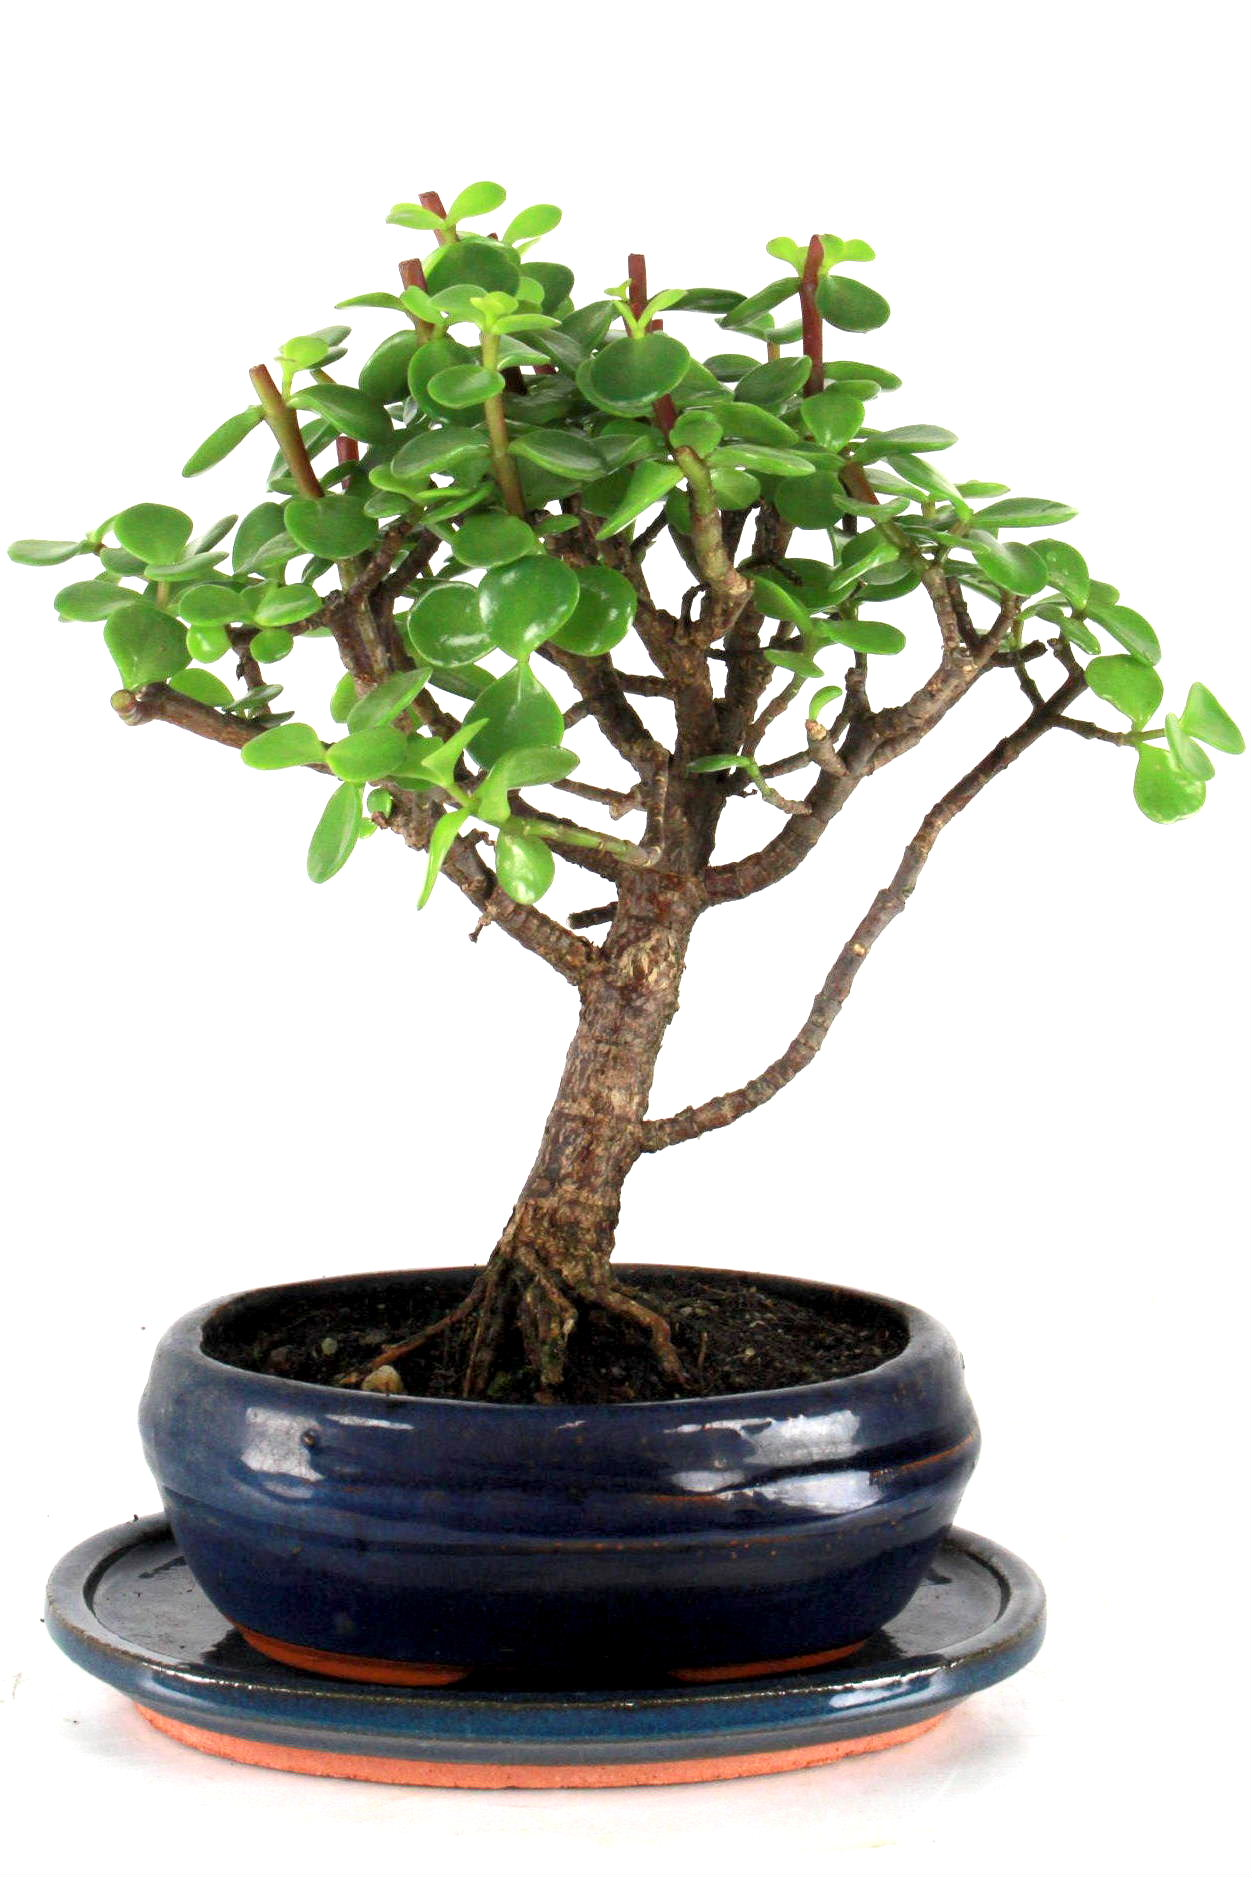 Dickblatt bersicht onlineshop oyaki bonsai for Bonsai onlineshop